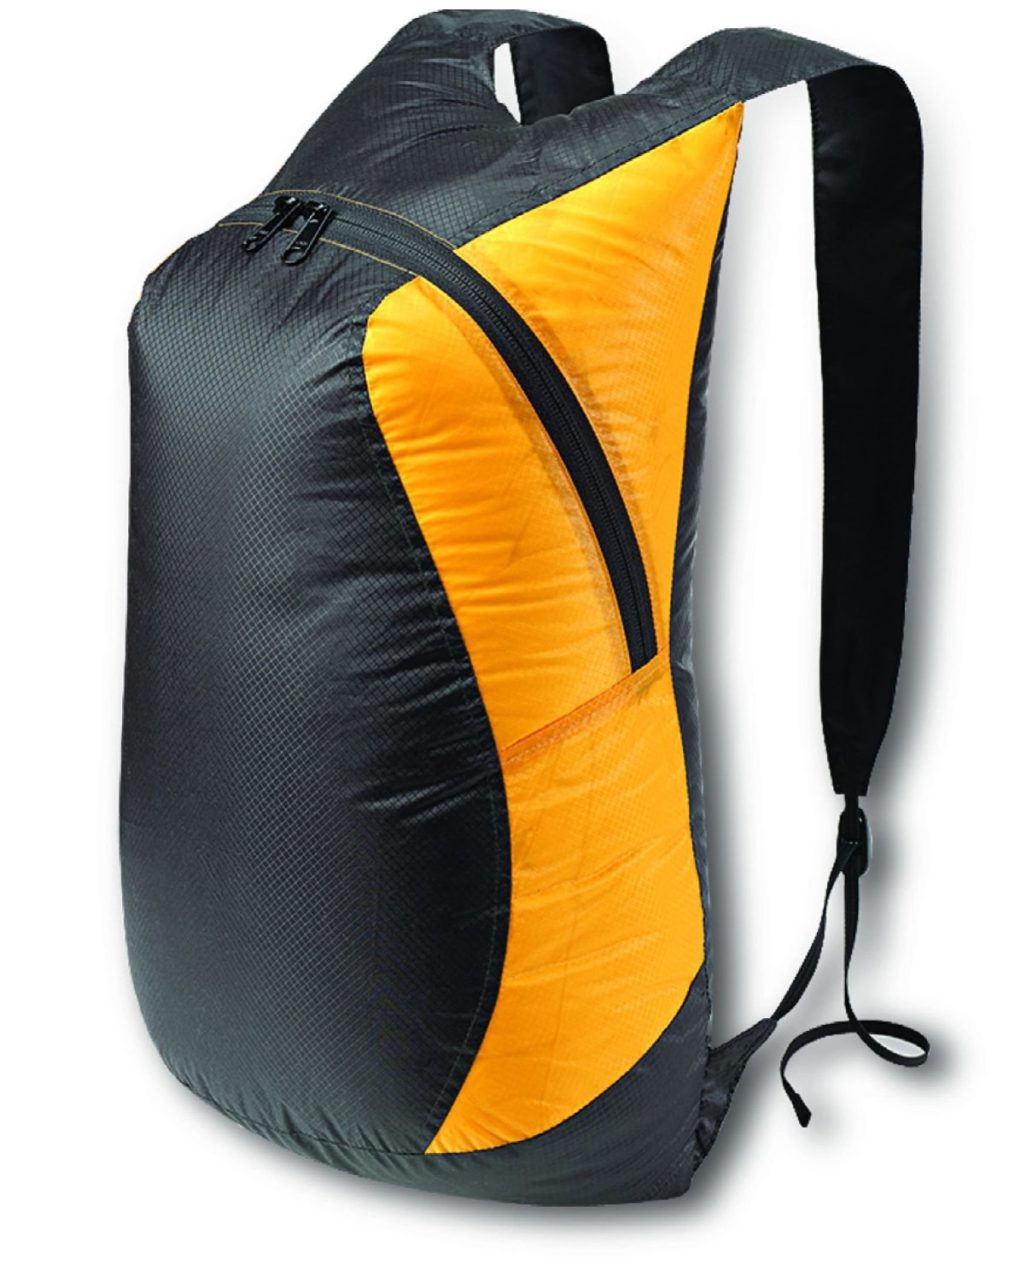 Matador Freerain24 Waterproof Packable Daypack Backpack- Fenix ... 36c5634550263